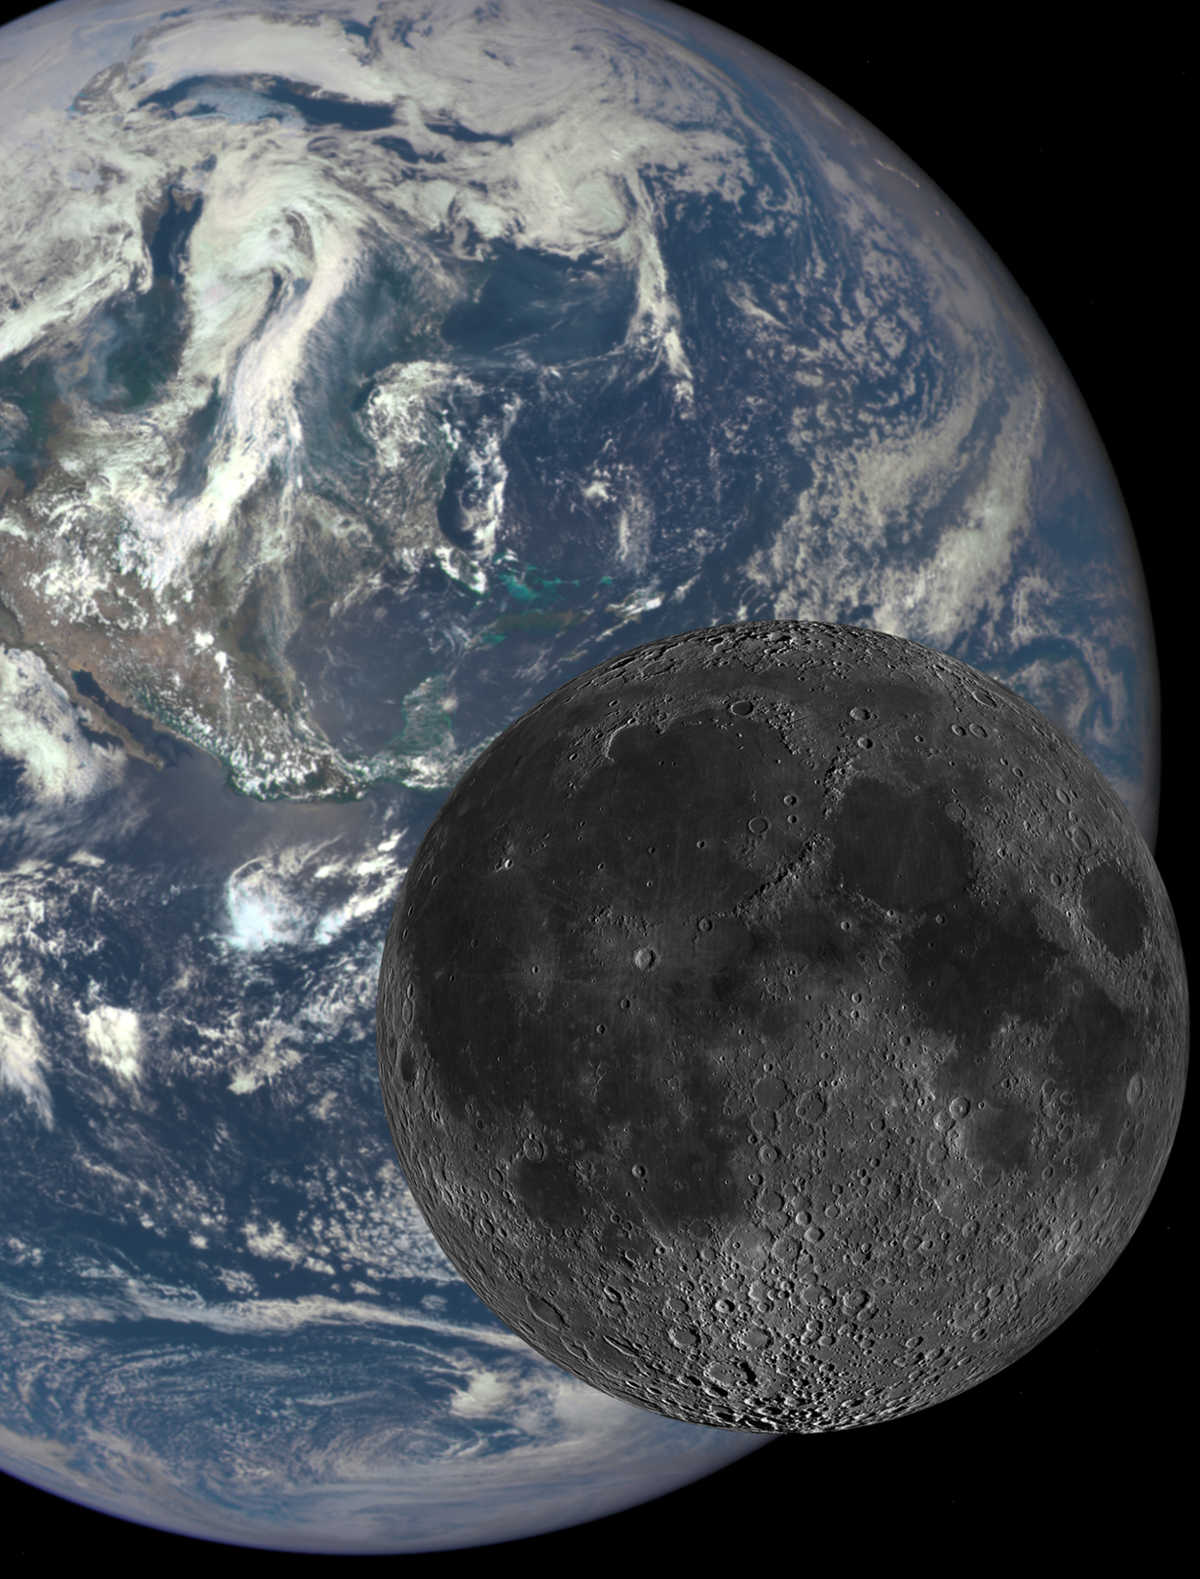 Moon formation models to explain key differences between the composition of lunar rocks and the Earth's.